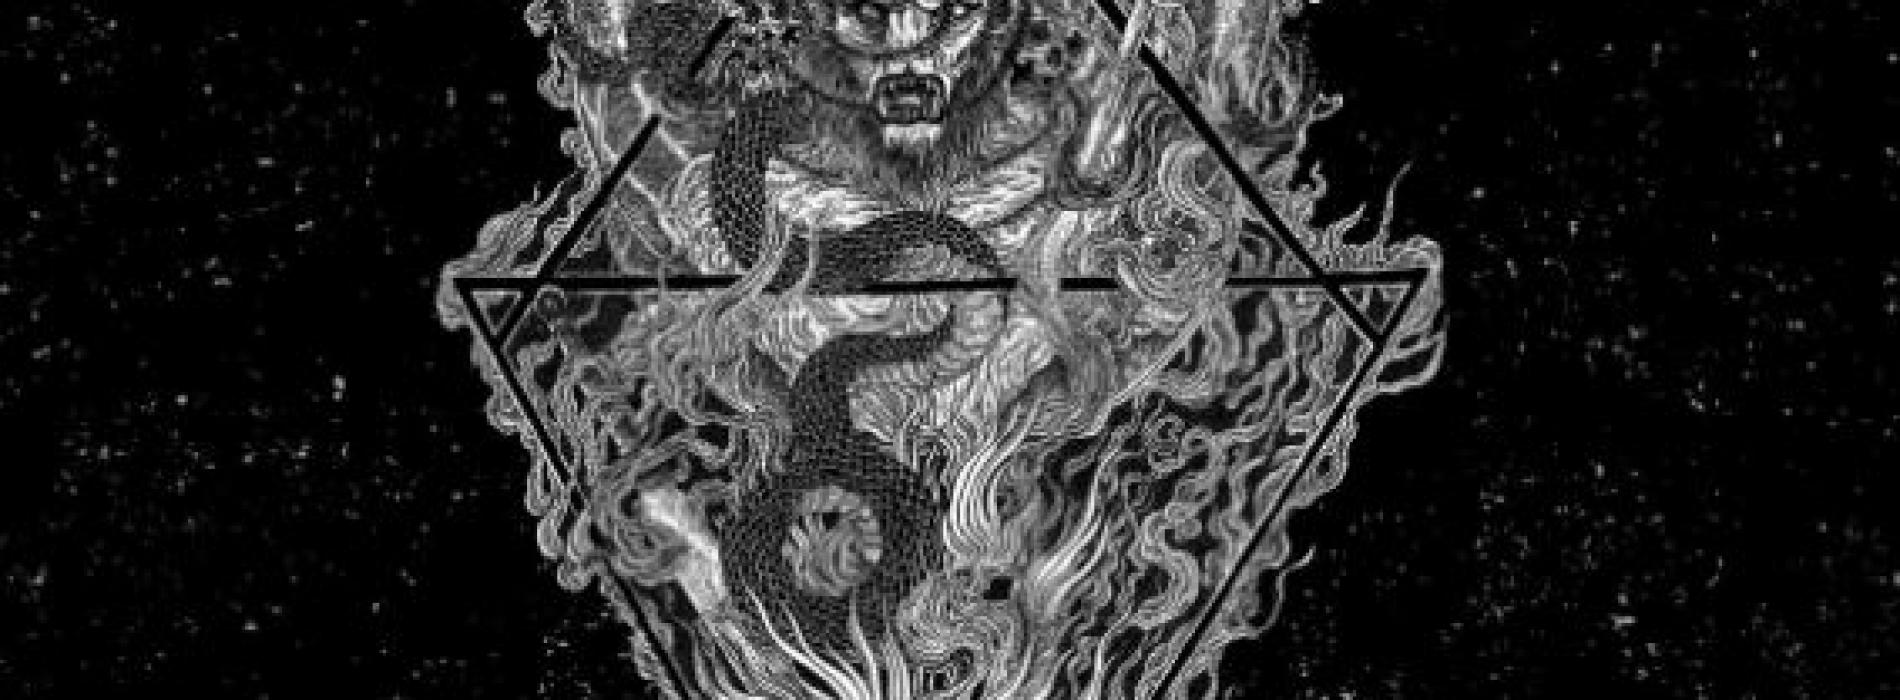 Genocide Shrines/Heresiarch/Serpents Athirst/Trepanation – Scorn Coalescence Split MCD Is Here!